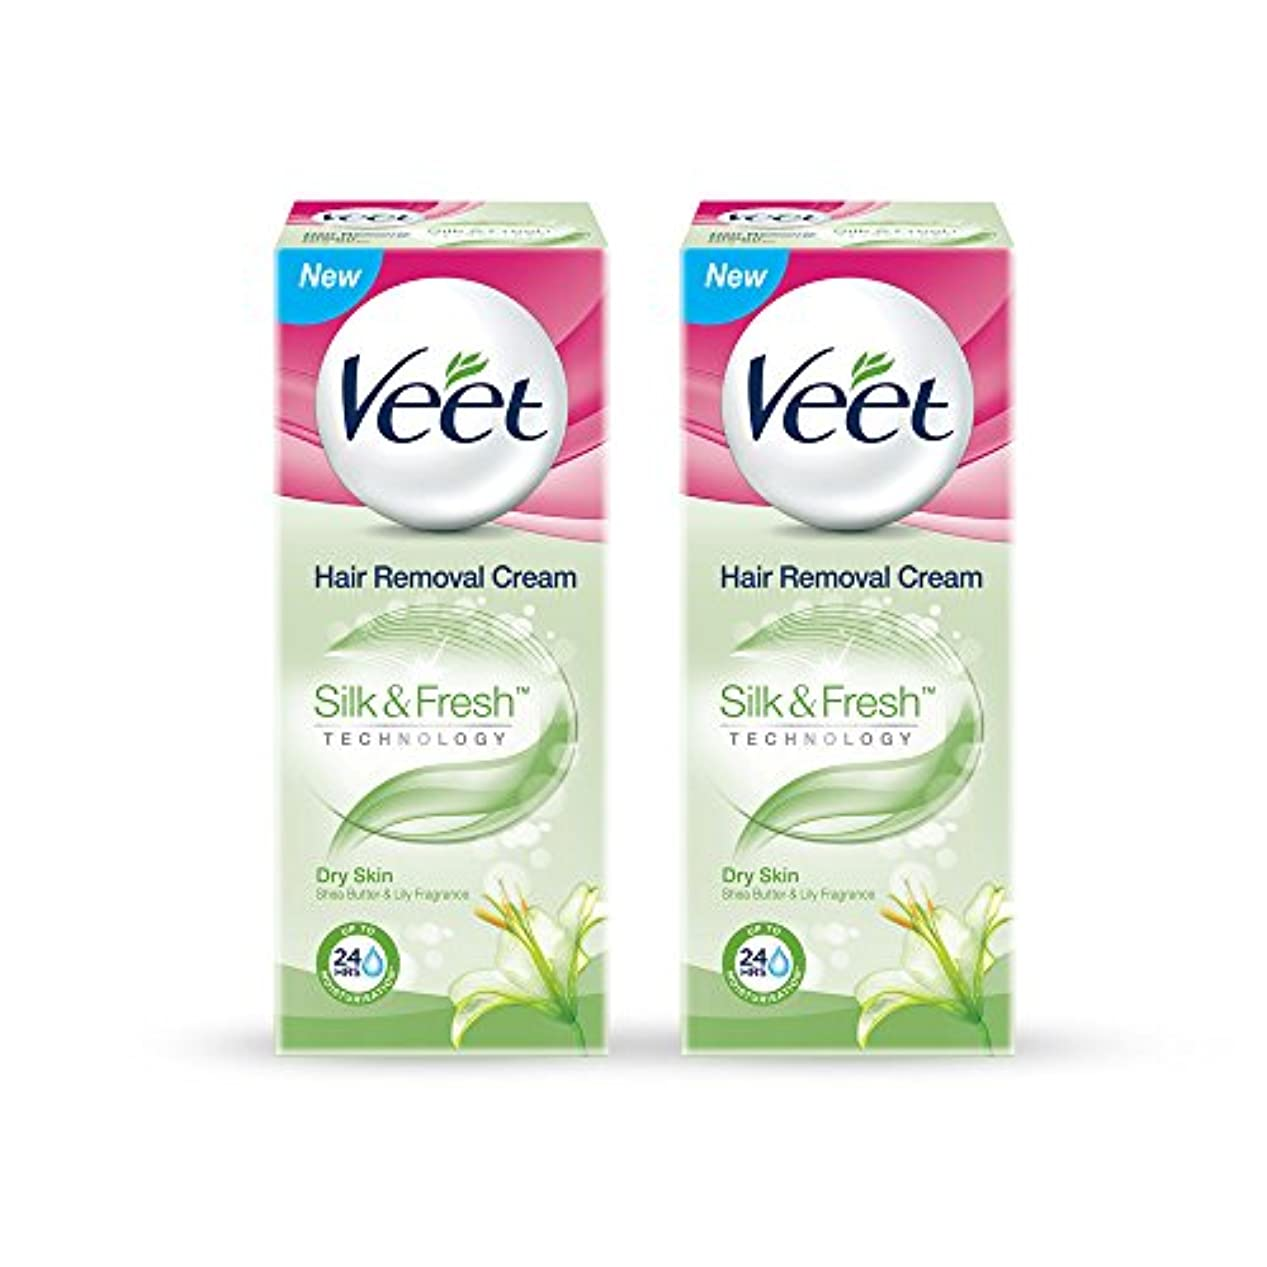 Veet Hair Removal Gel Cream for Dry Skin with Shea Butter & Lily Fragrance 25 g (Pack of 2)